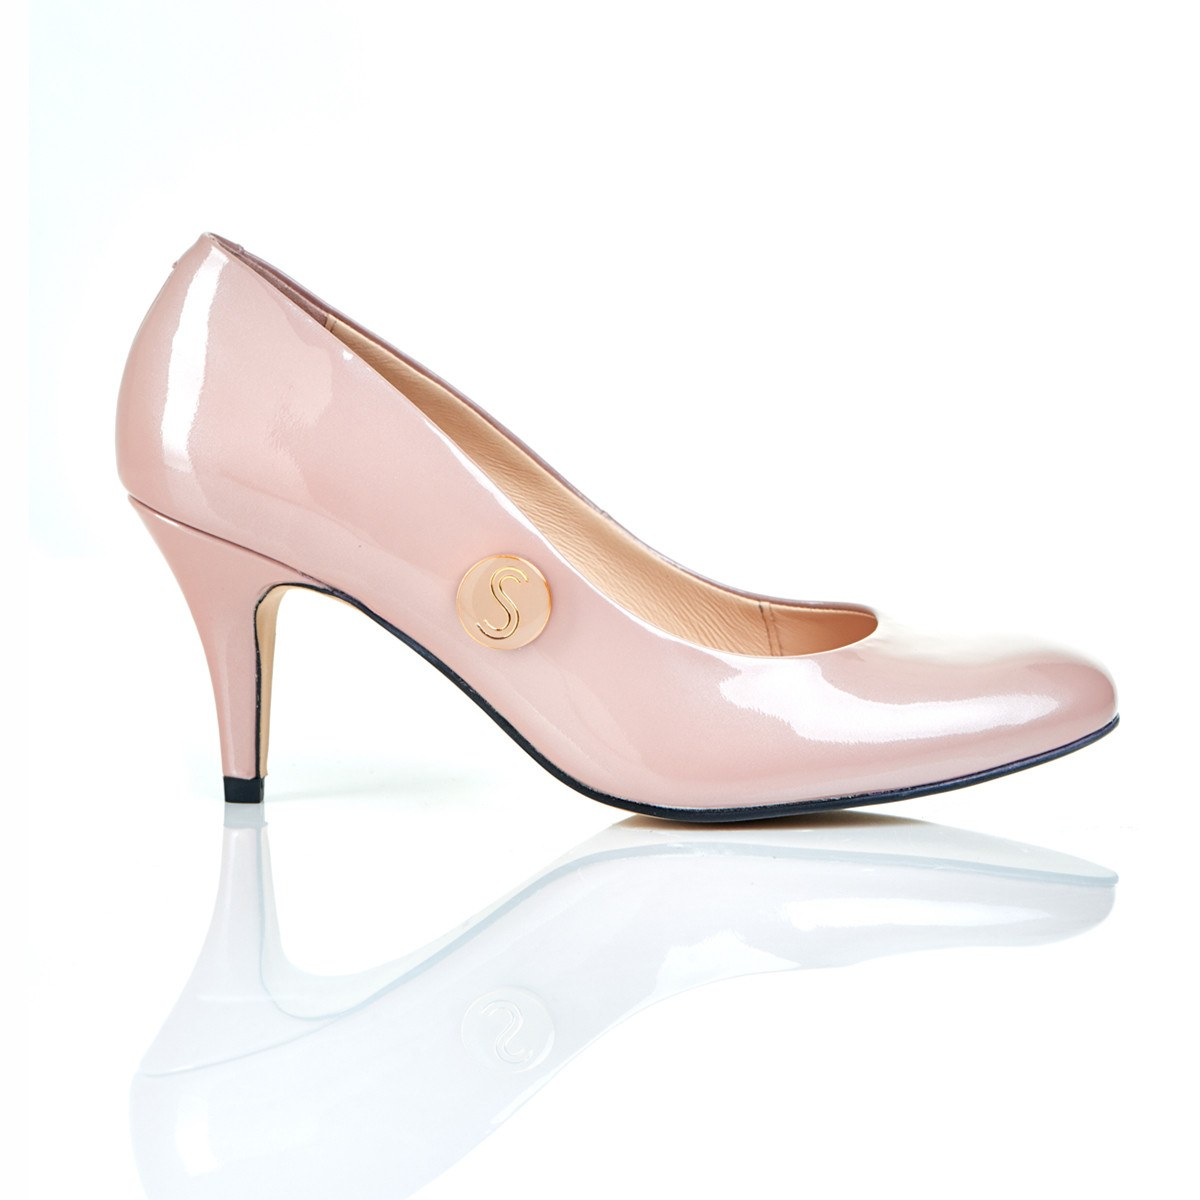 Heart of Gold in Blush - Shoes by Shaherazad